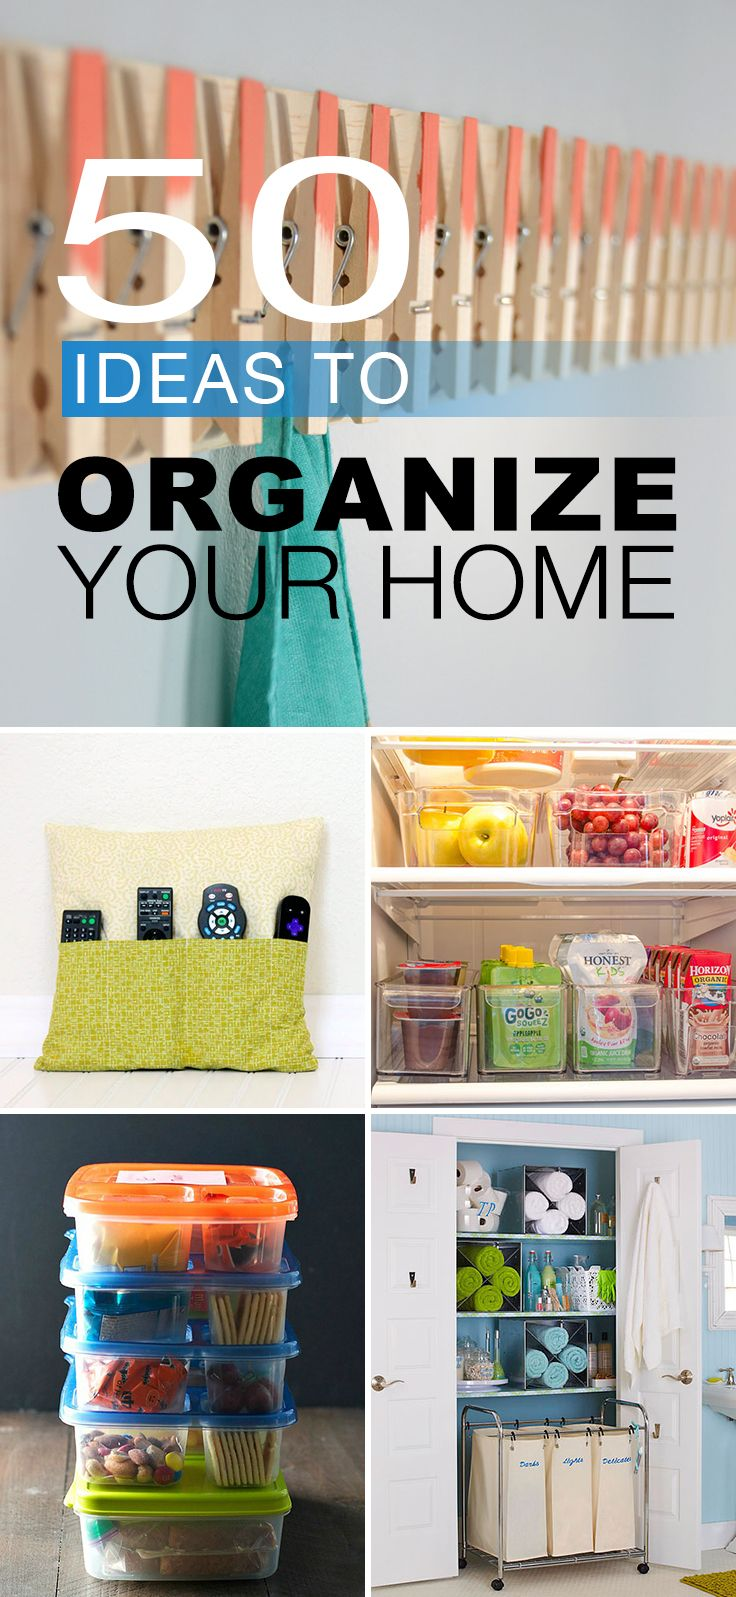 50 Ideas to Organize Your Home • Try these home organizing ideas, tips and hacks to help declutter your home! #homeorganizing #organizeyourhome #organizingideas #organizing #howtogetorganized